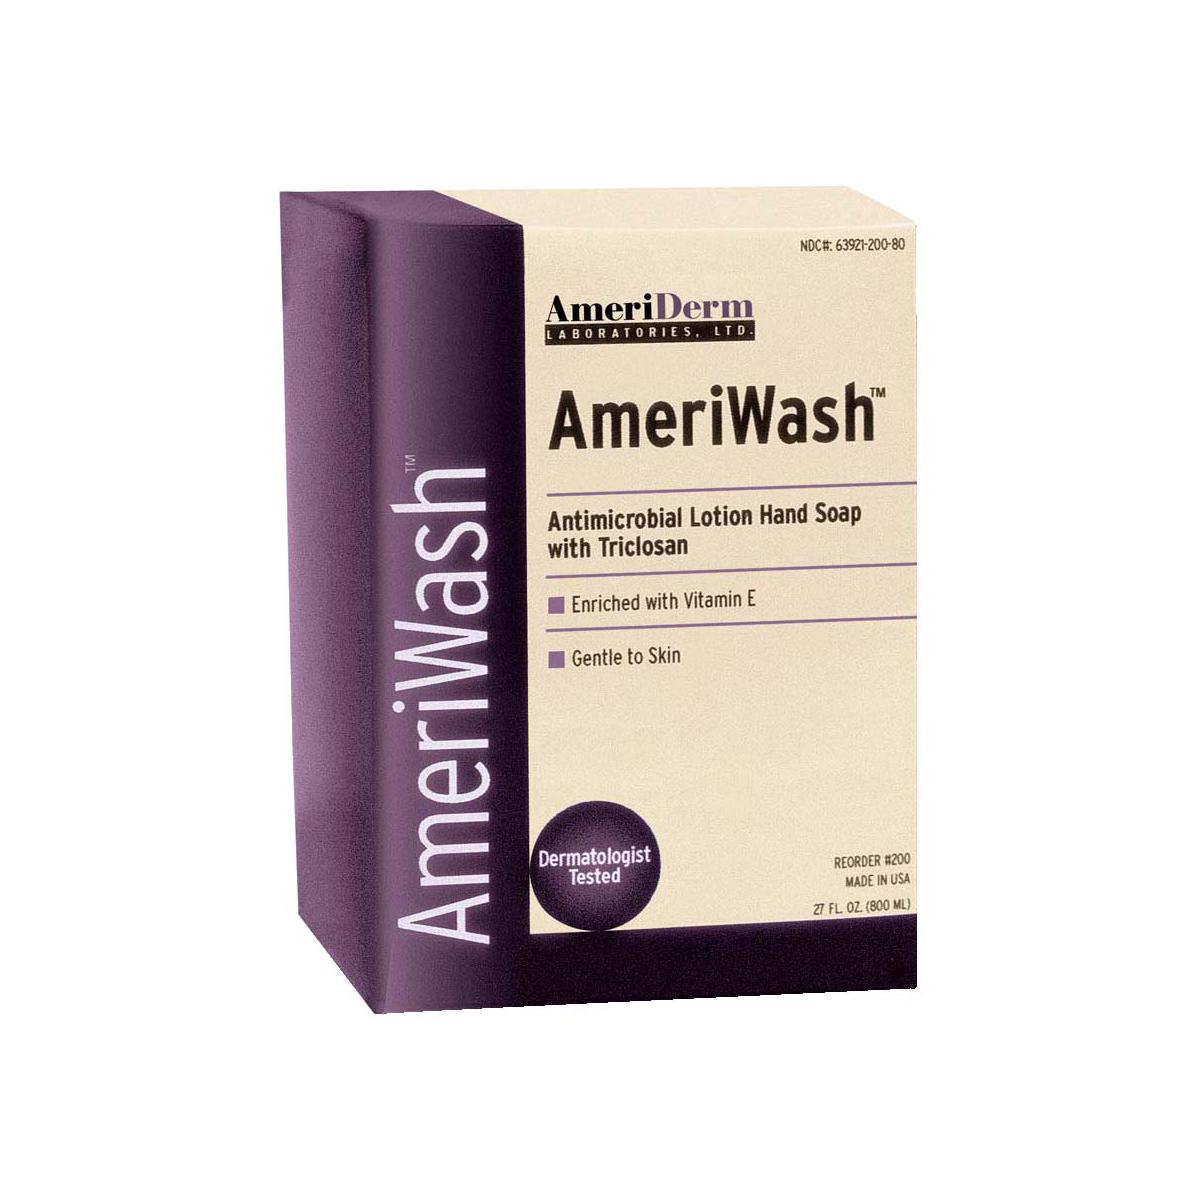 AmeriWash Antimicrobial Lotion Soap with Triclosan, 800 mL ADM200